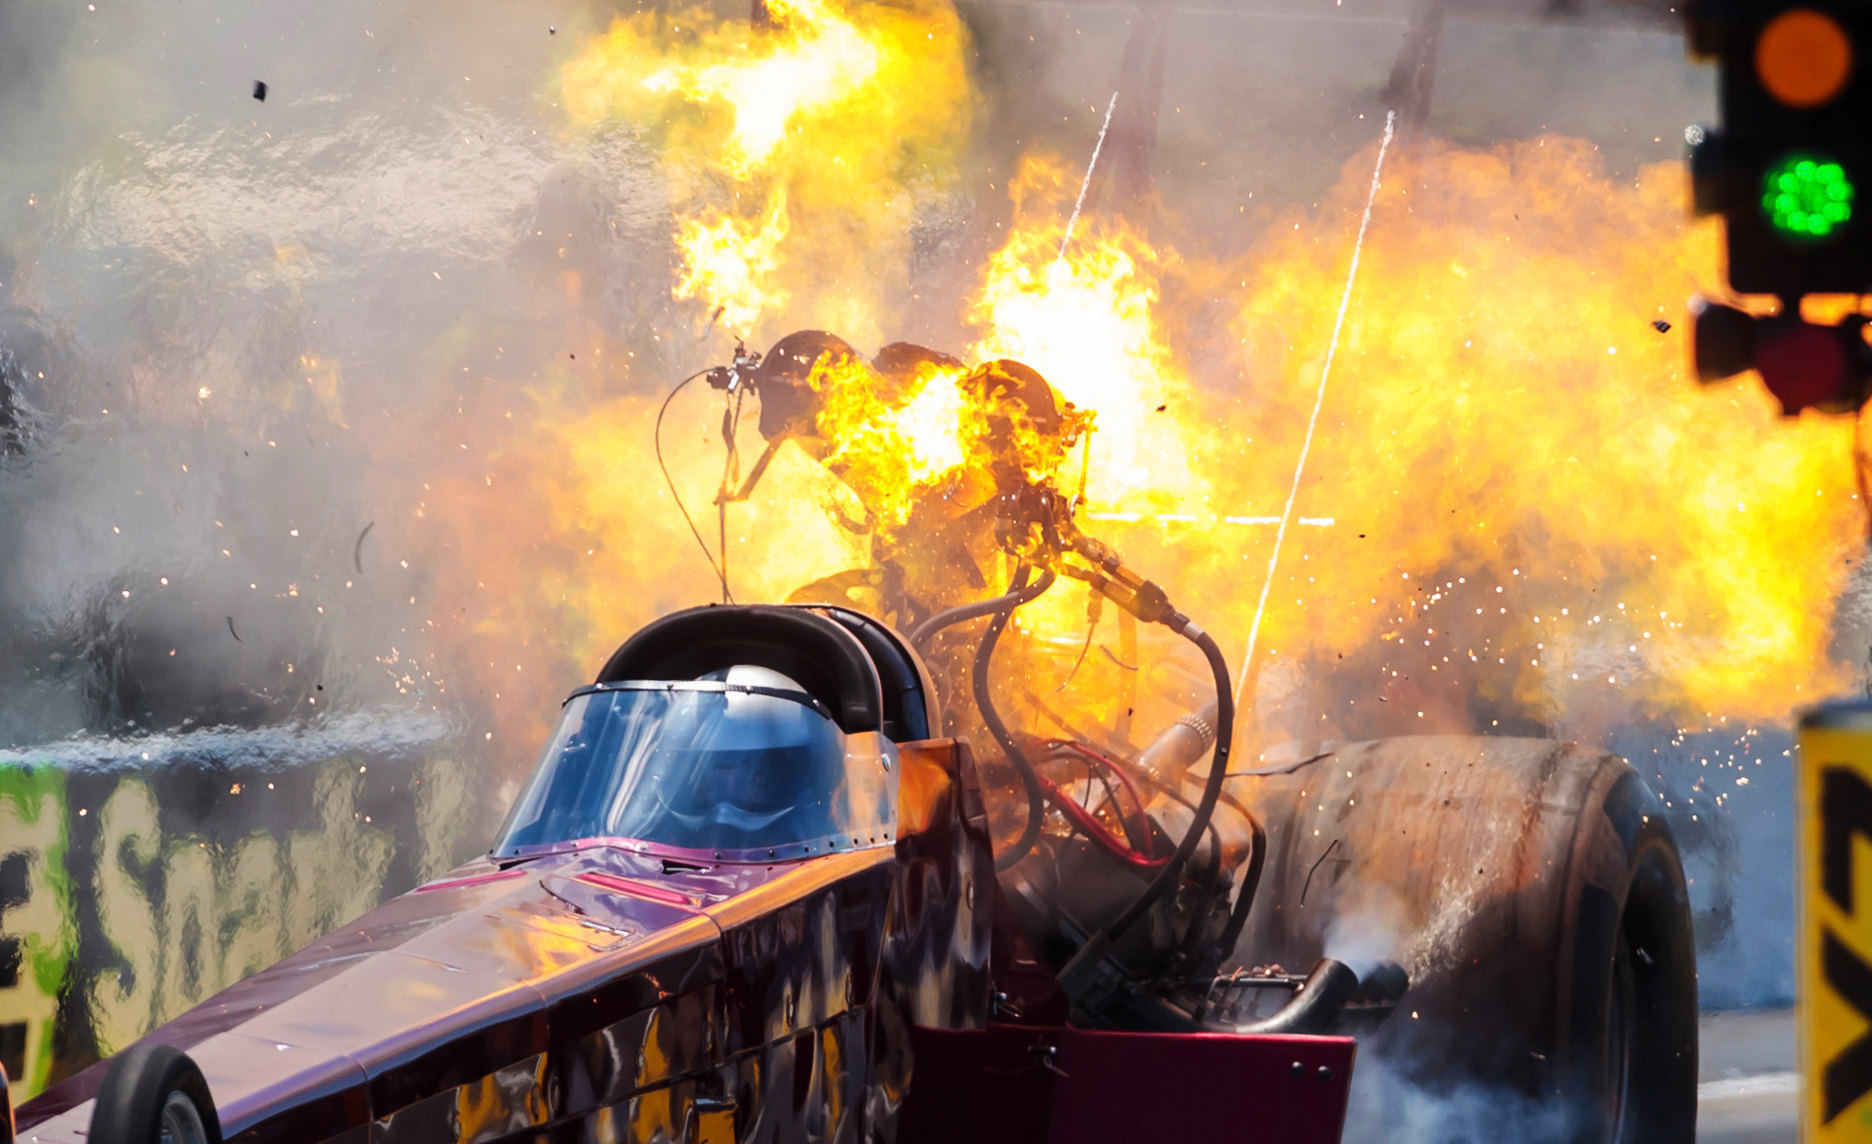 NHRA top fuel driver Kyle Wurtzel explodes an engine on fire during qualifying for the E3 Spark Plugs Nationals at Lucas Oil Raceway. This is the first race back for NHRA since the start of the COVID-19 global pandemic.